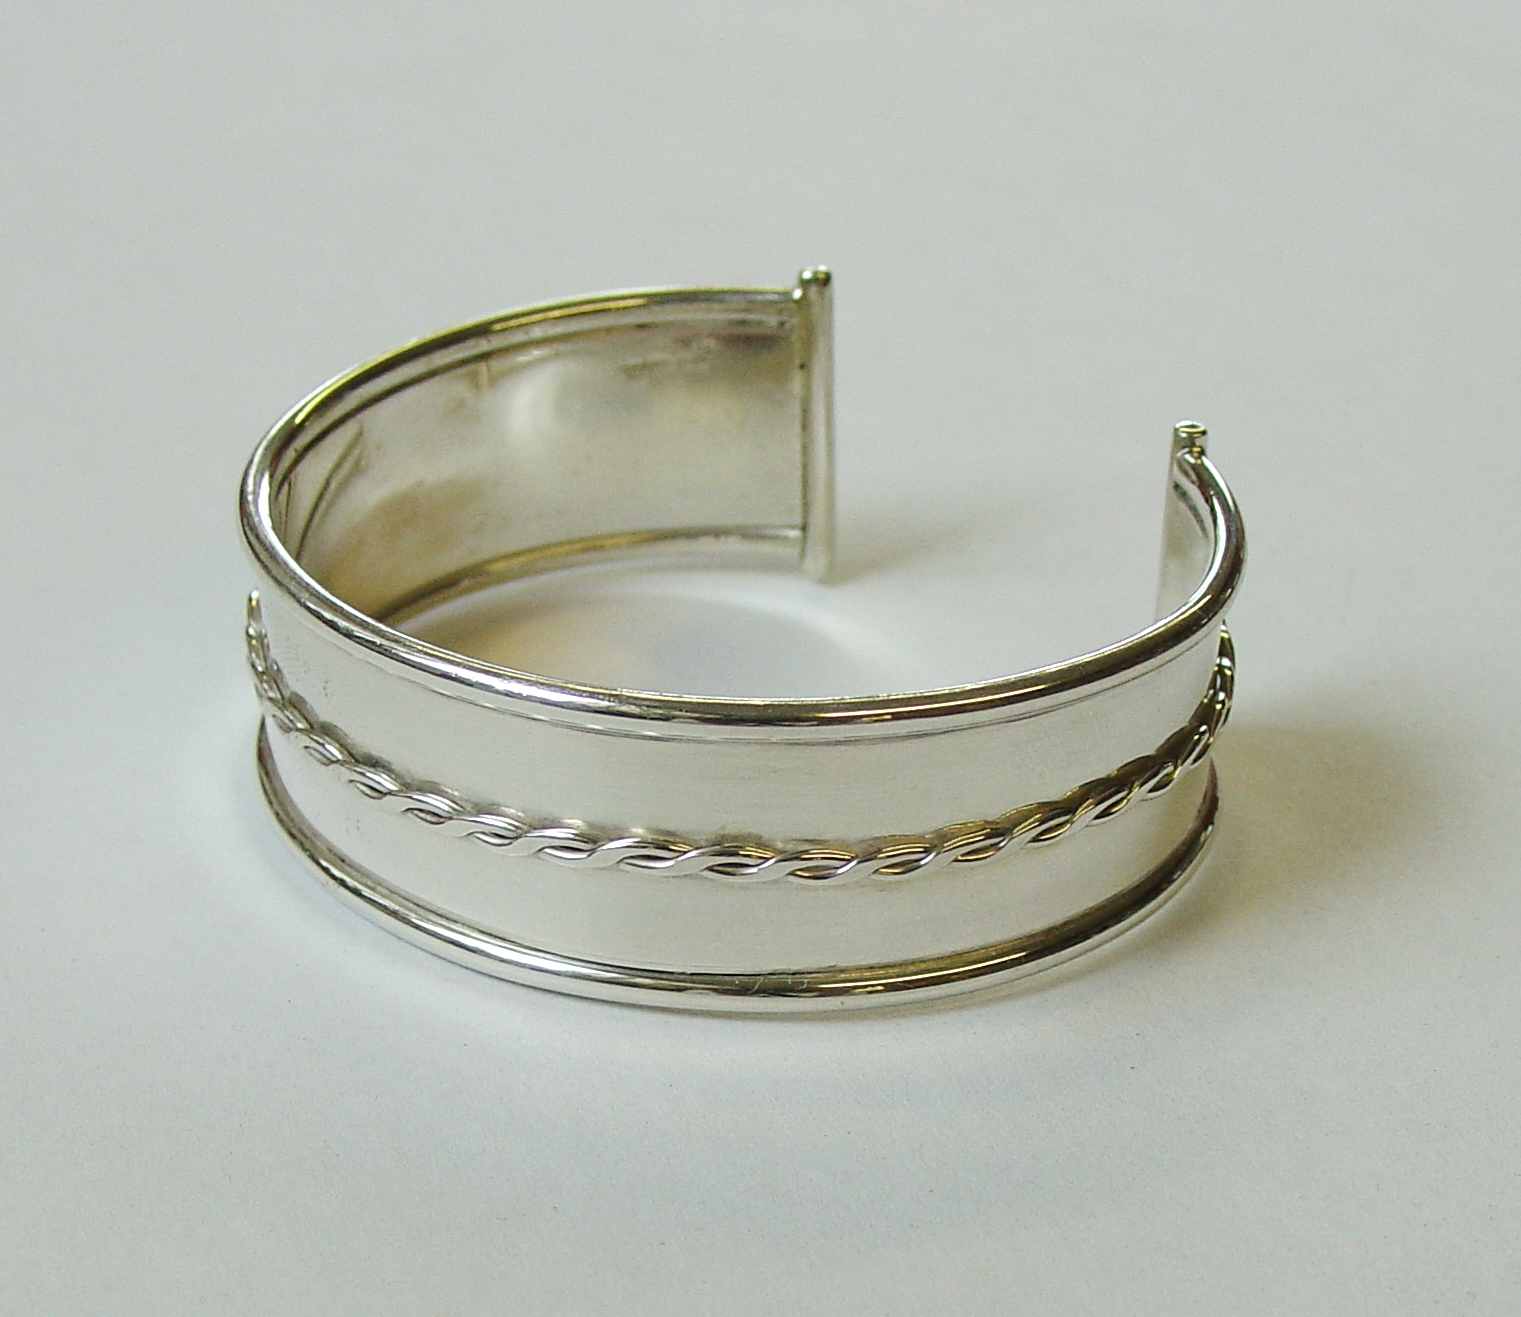 Chunky silver bangle with silver wire twist detail